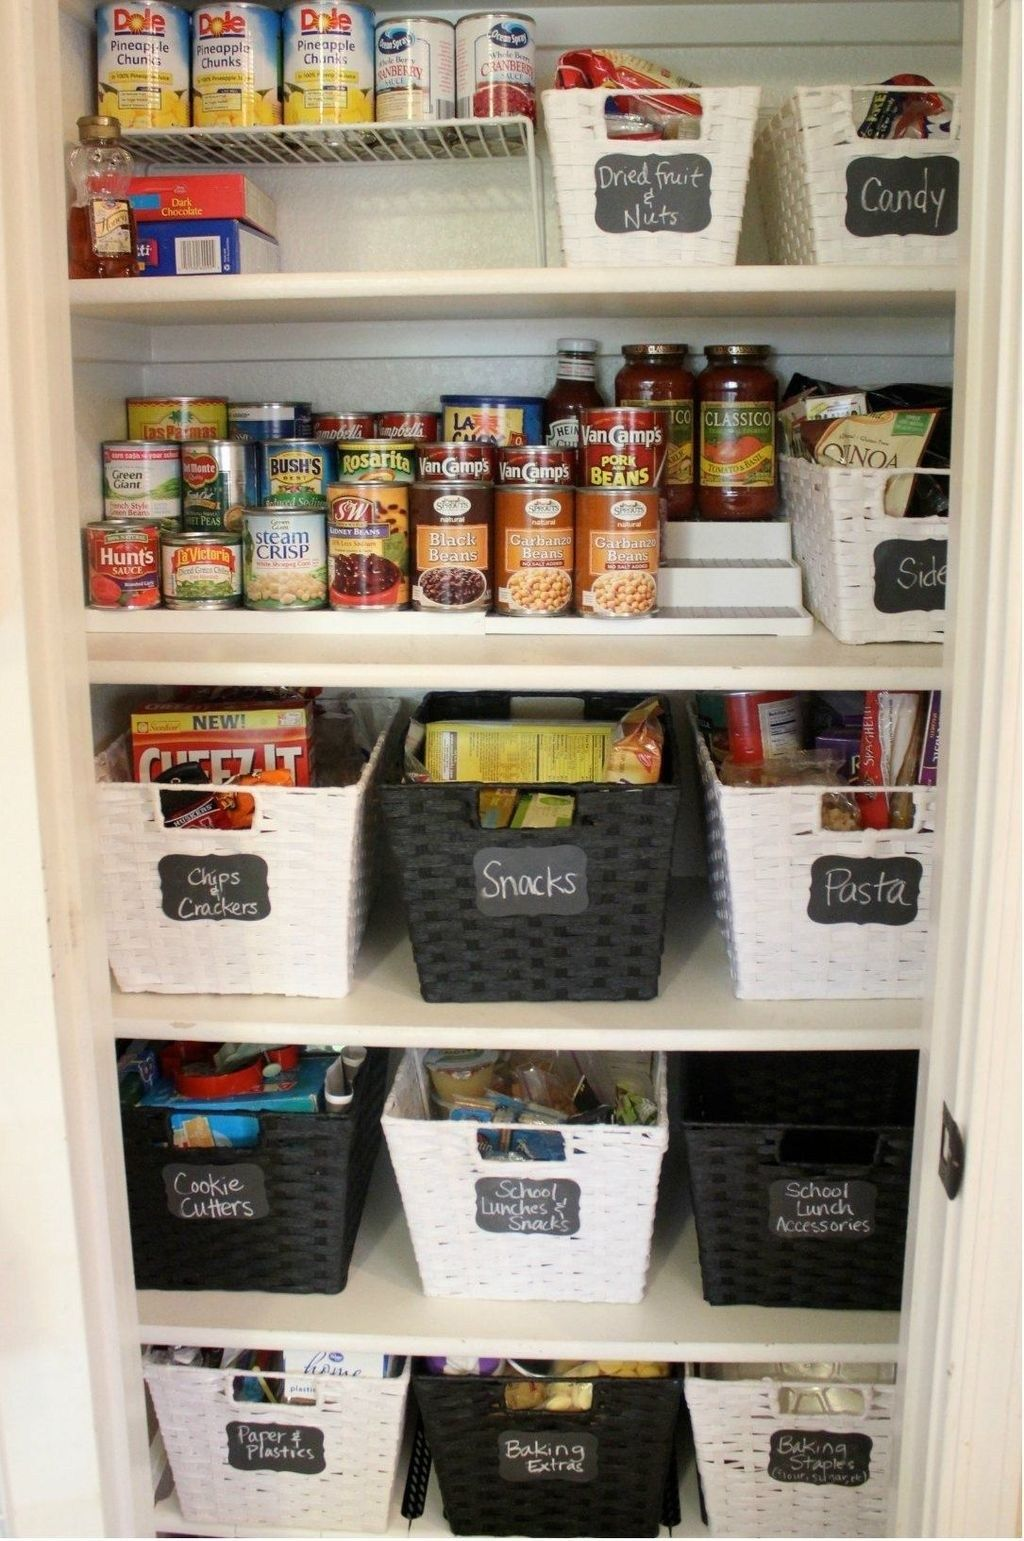 49 Nice Pantry Organization Ideas In 2020 With Images Kitchen